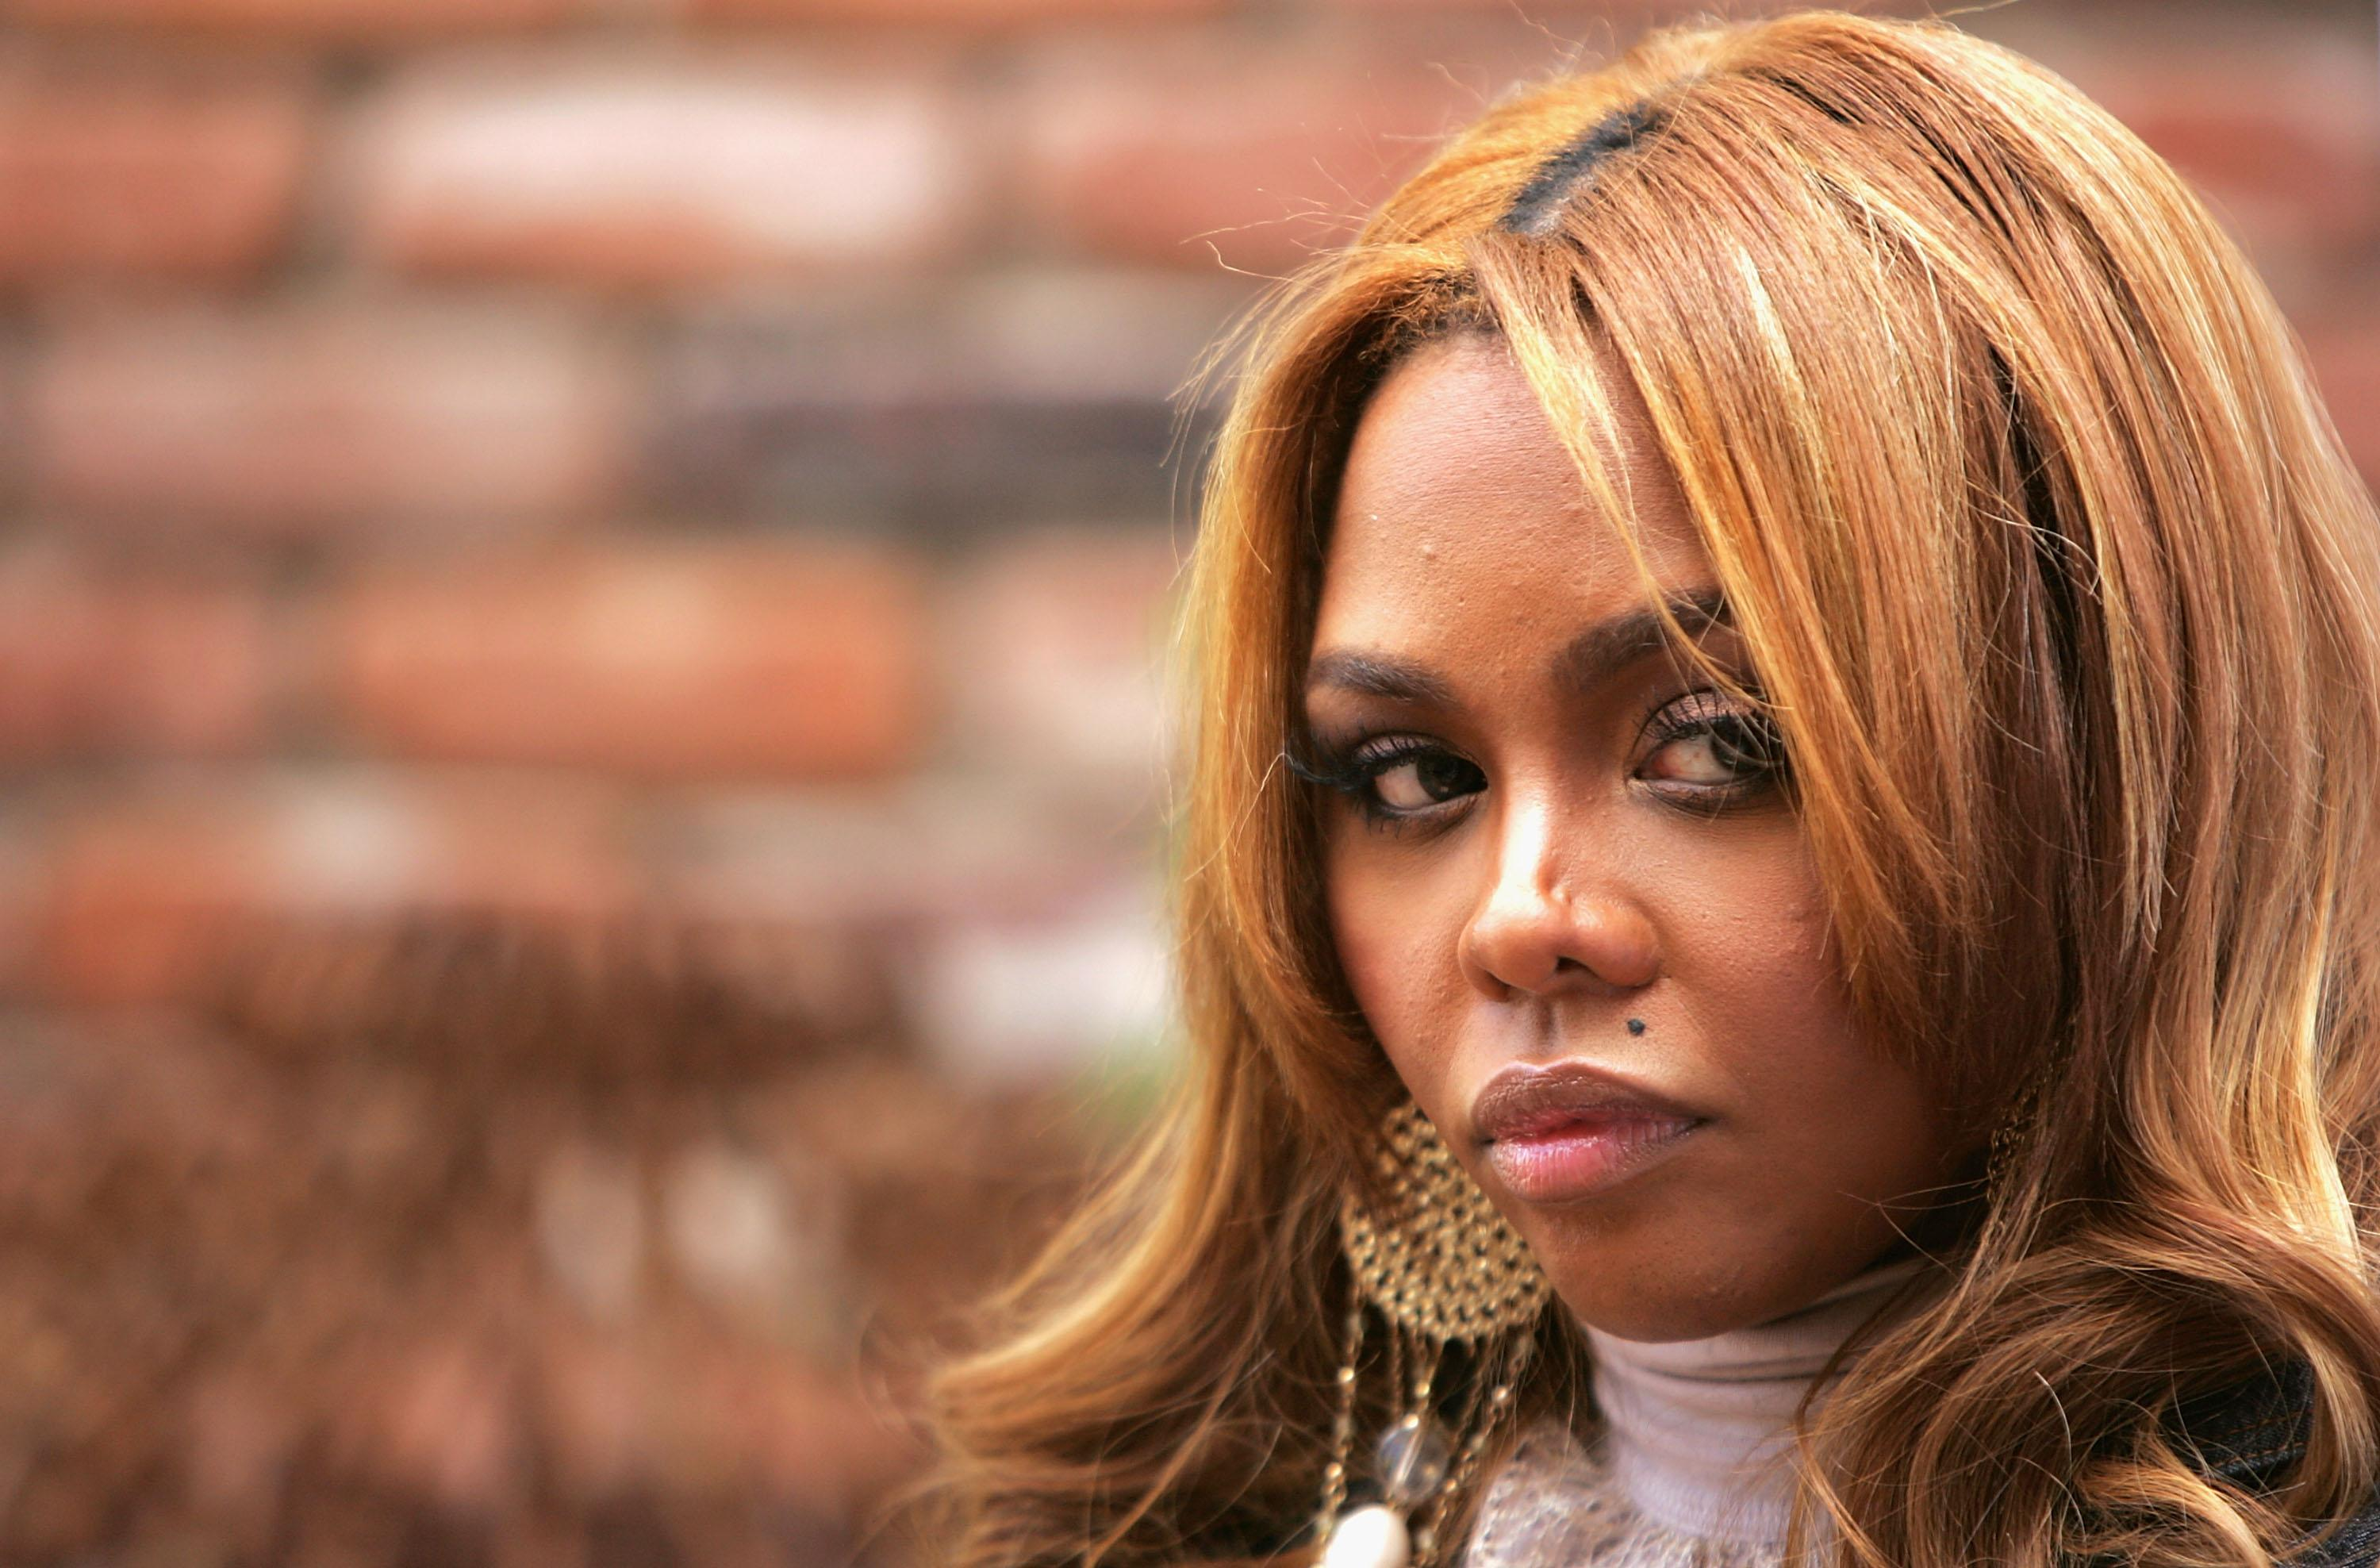 Lil Kim Wallpapers High Quality | Download Free